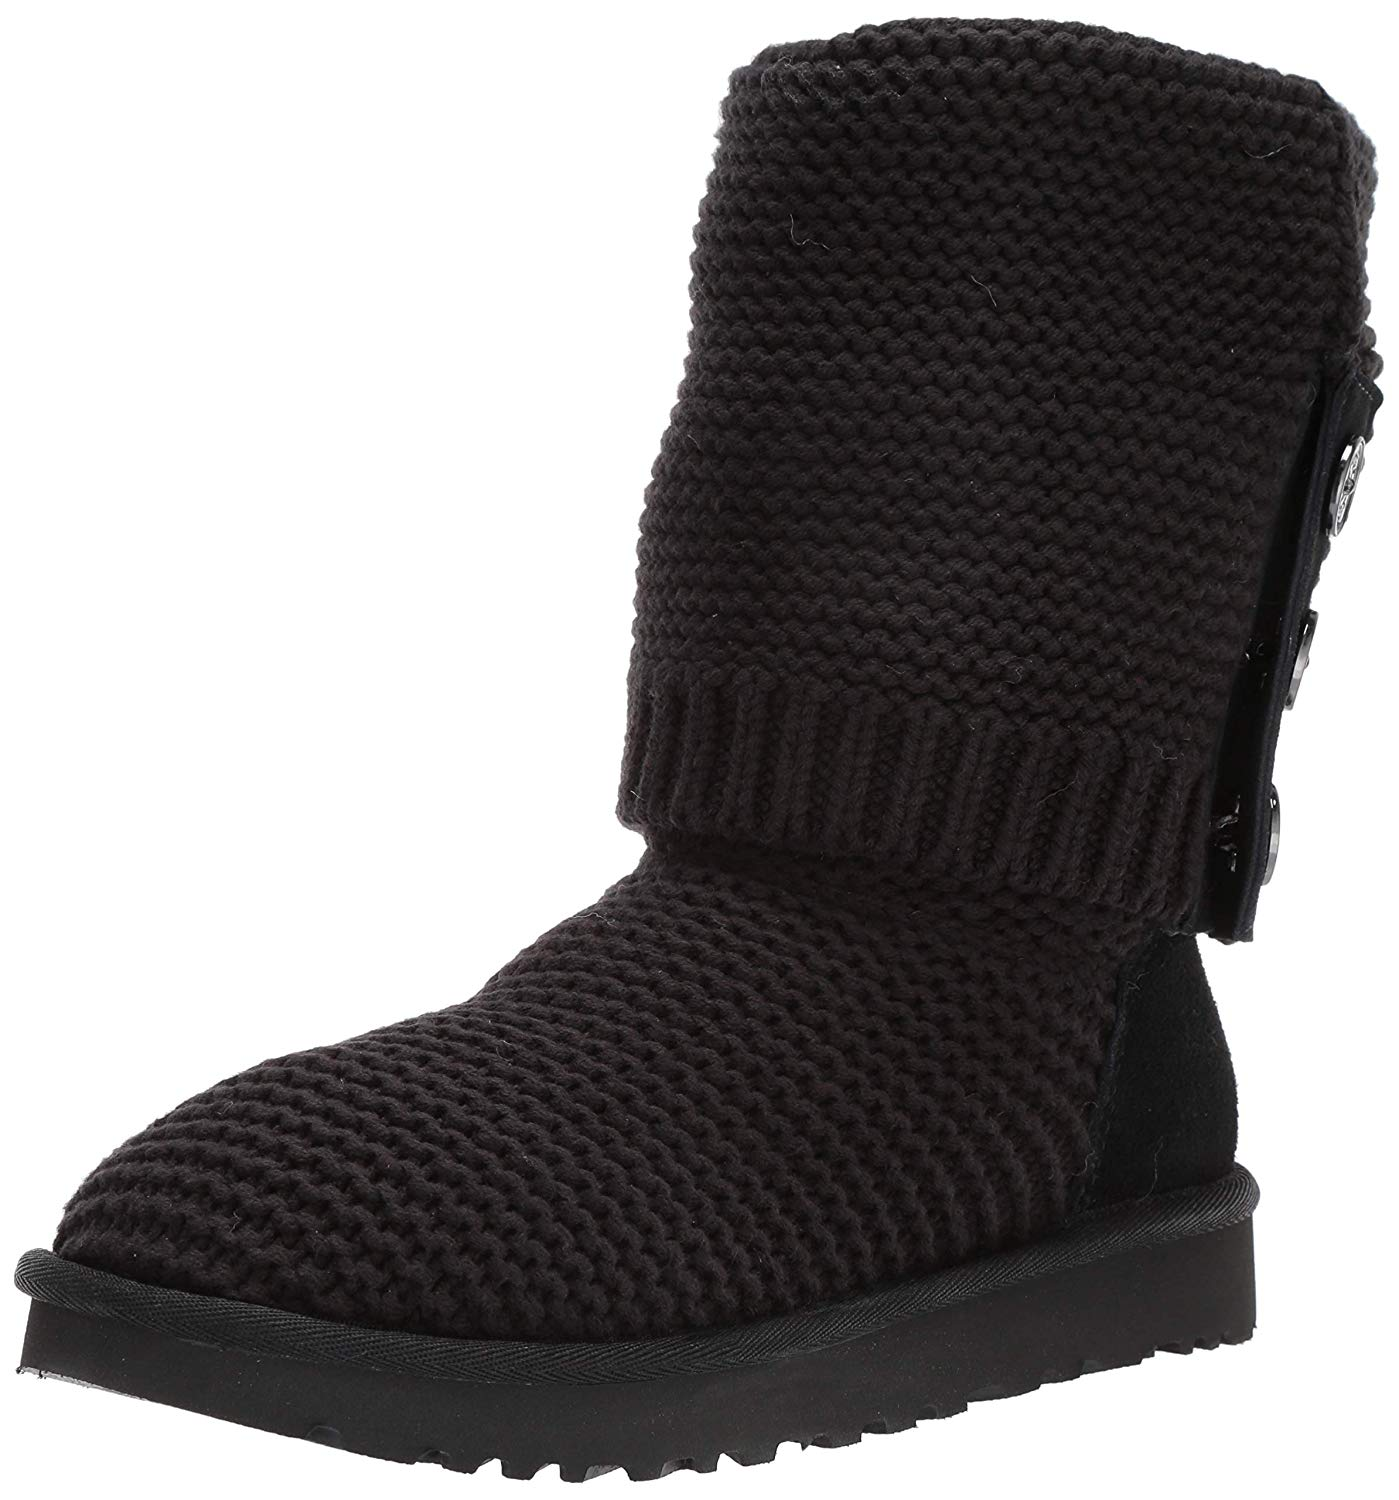 feac31c1311 UGG Women's W PURL Cardy Knit Fashion Boot US